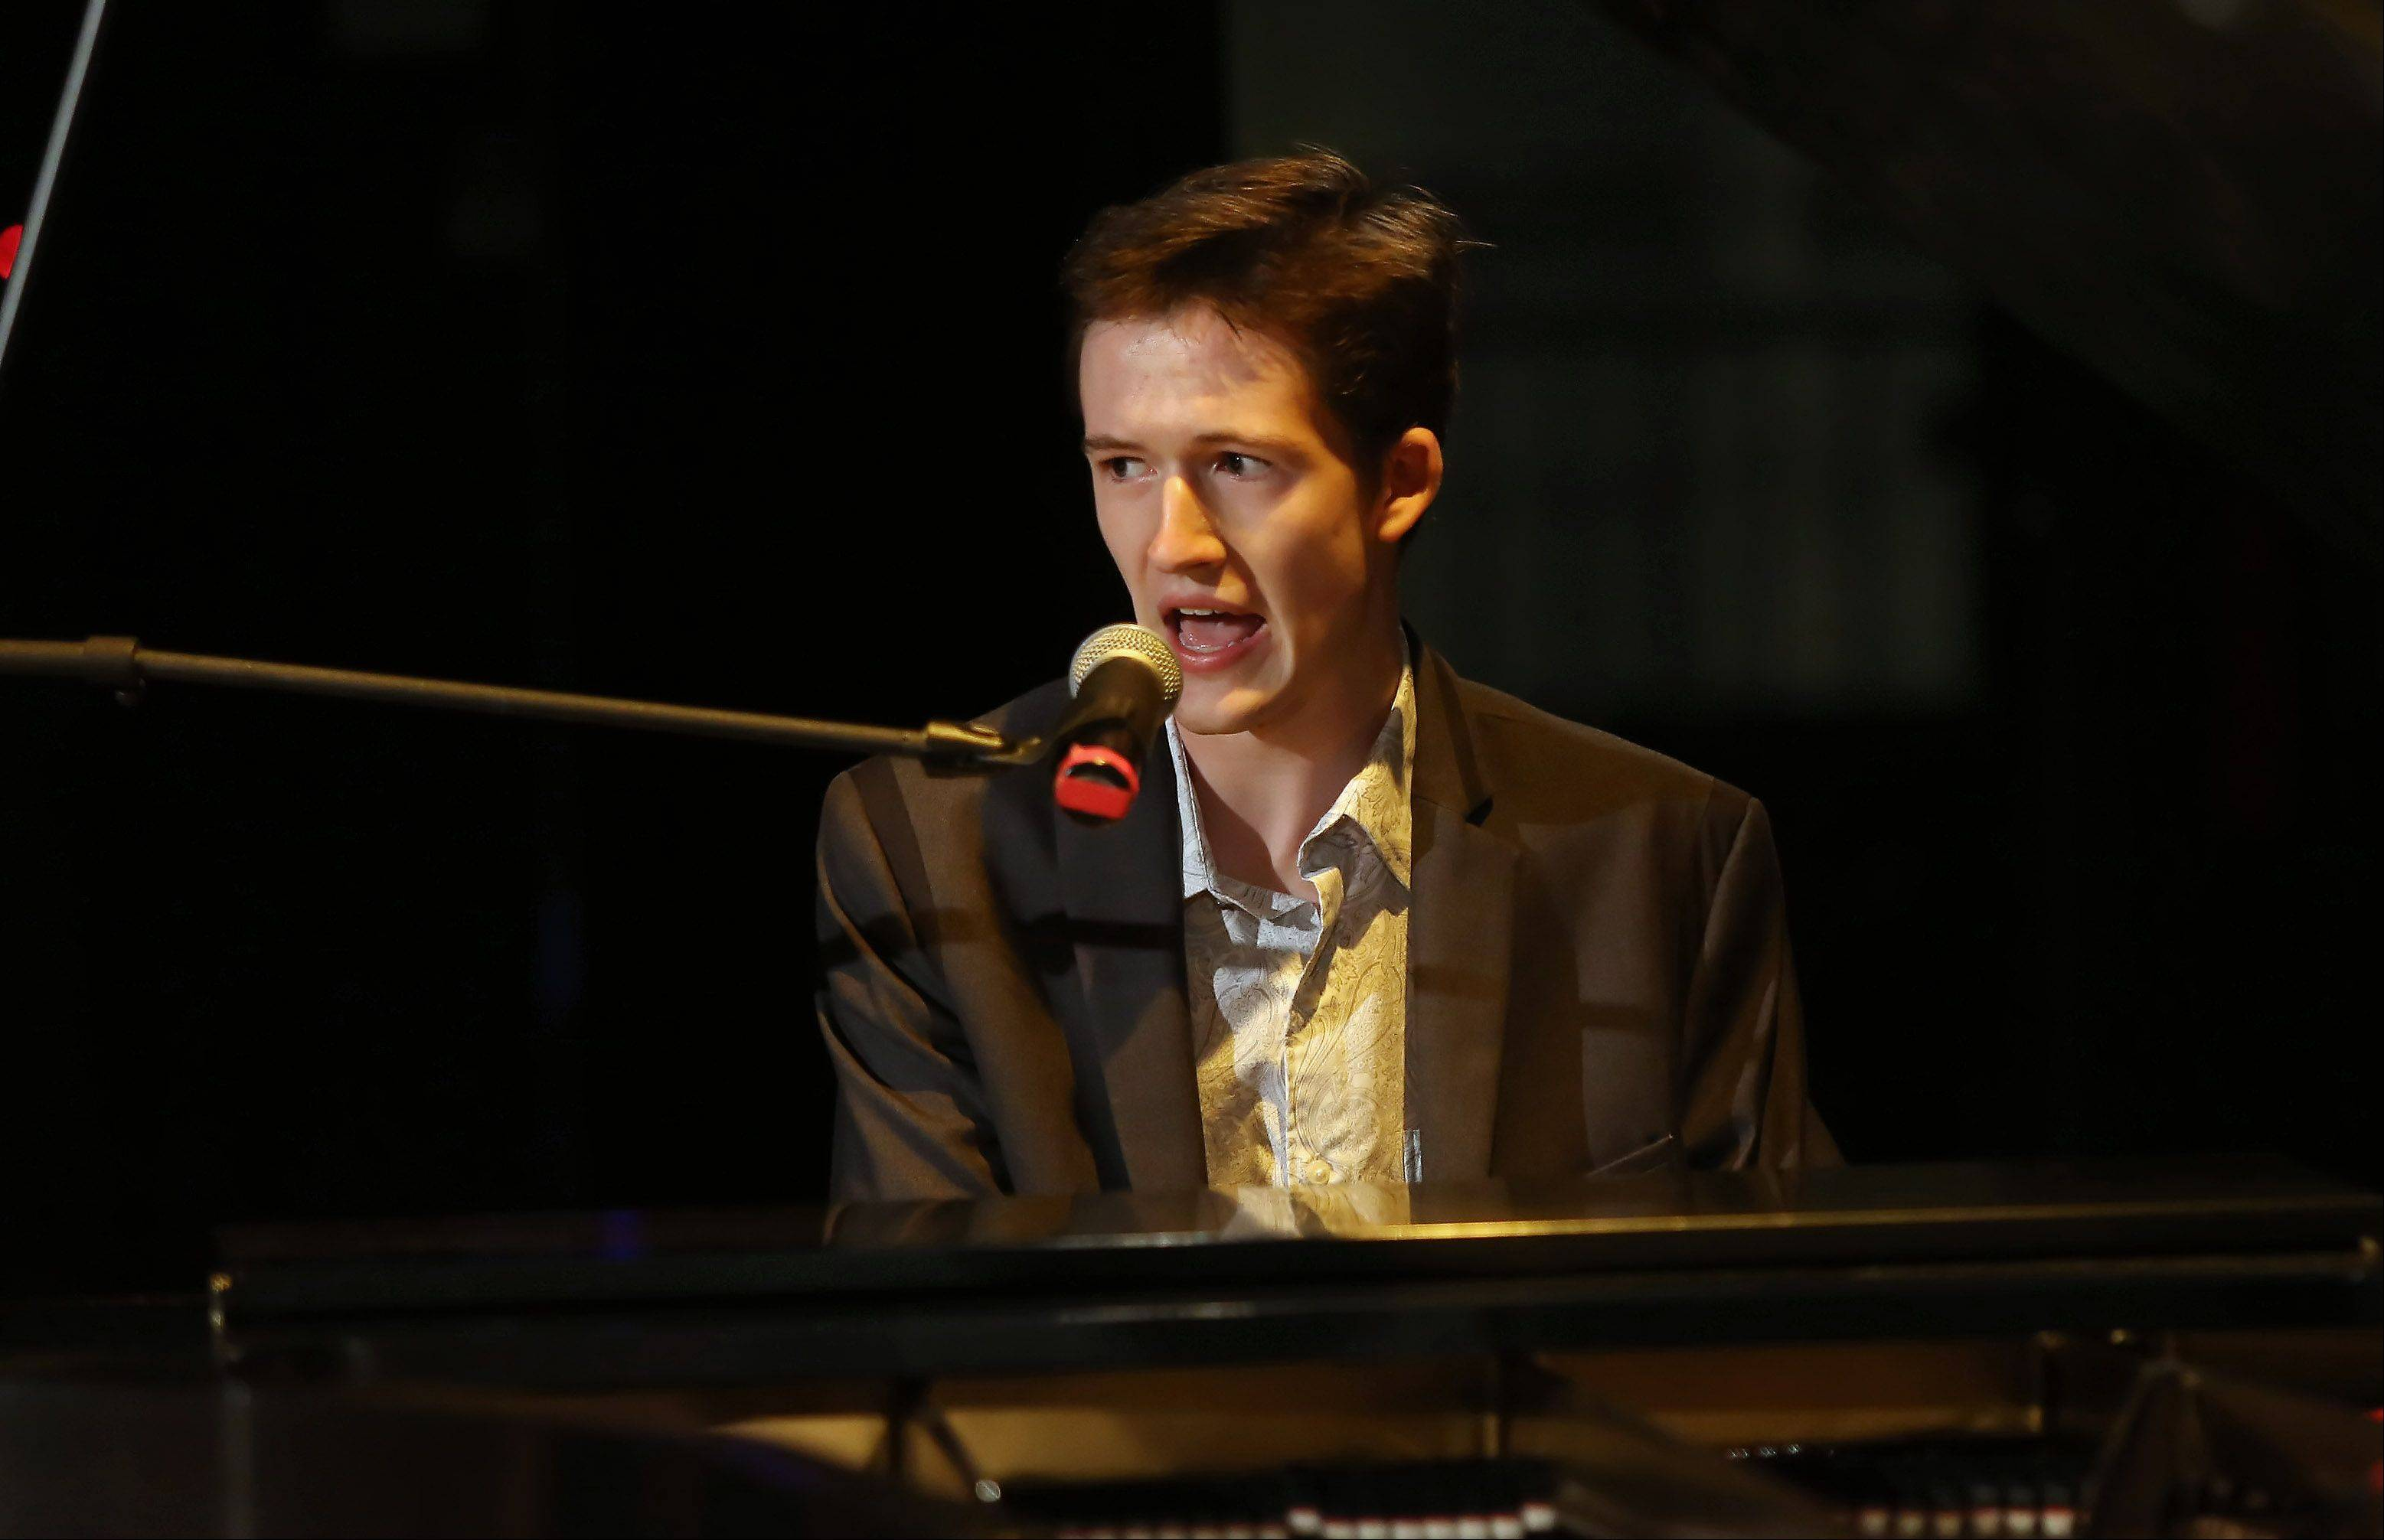 Riley Mangan of Arlington Heights plays jazz piano Sunday during the second round of performances by finalists of the Suburban Chicago's Got Talent competition at the Metropolis Performing Arts Centre in Arlington Heights. The summer long talent contest is presented by the Daily Herald and sponsored by the Arlington Heights Chamber of Commerce.